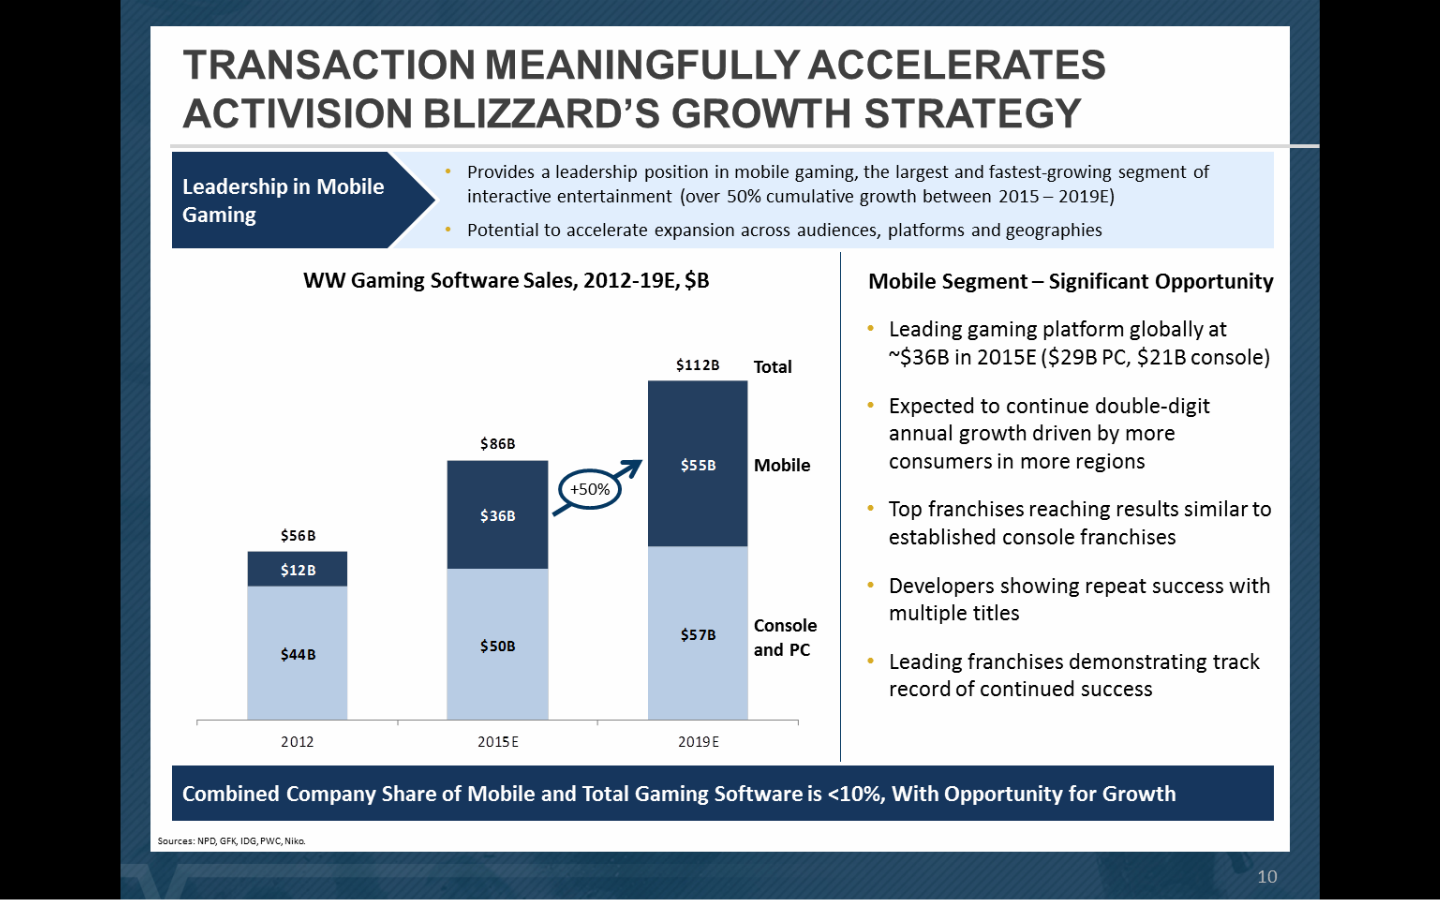 Activision's own projections for the industry show why it's so concerned with getting a foothold in mobile gaming.